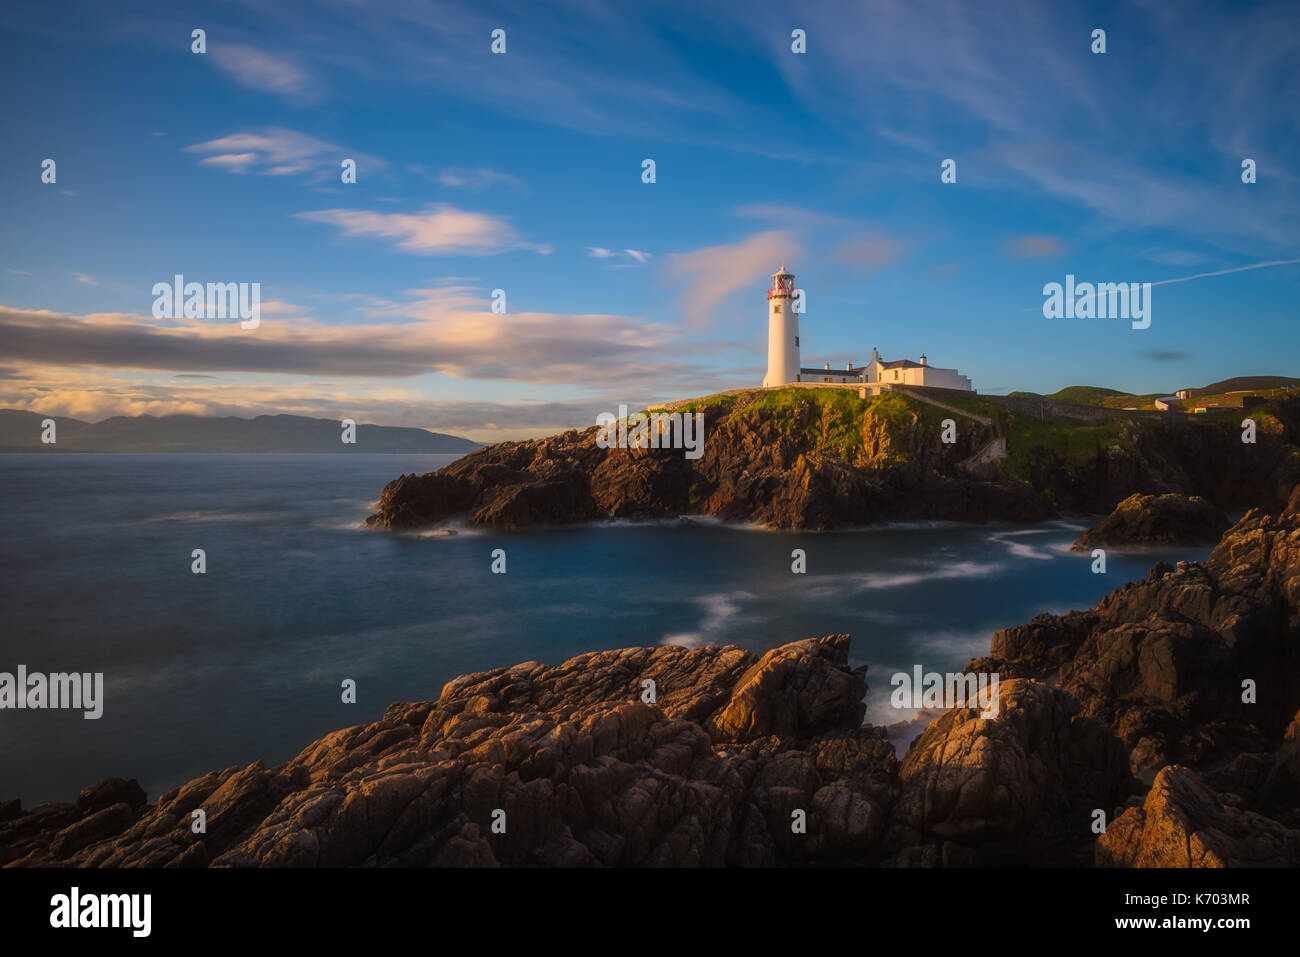 Fanad Head Lighthouse - Ireland - Stock Image